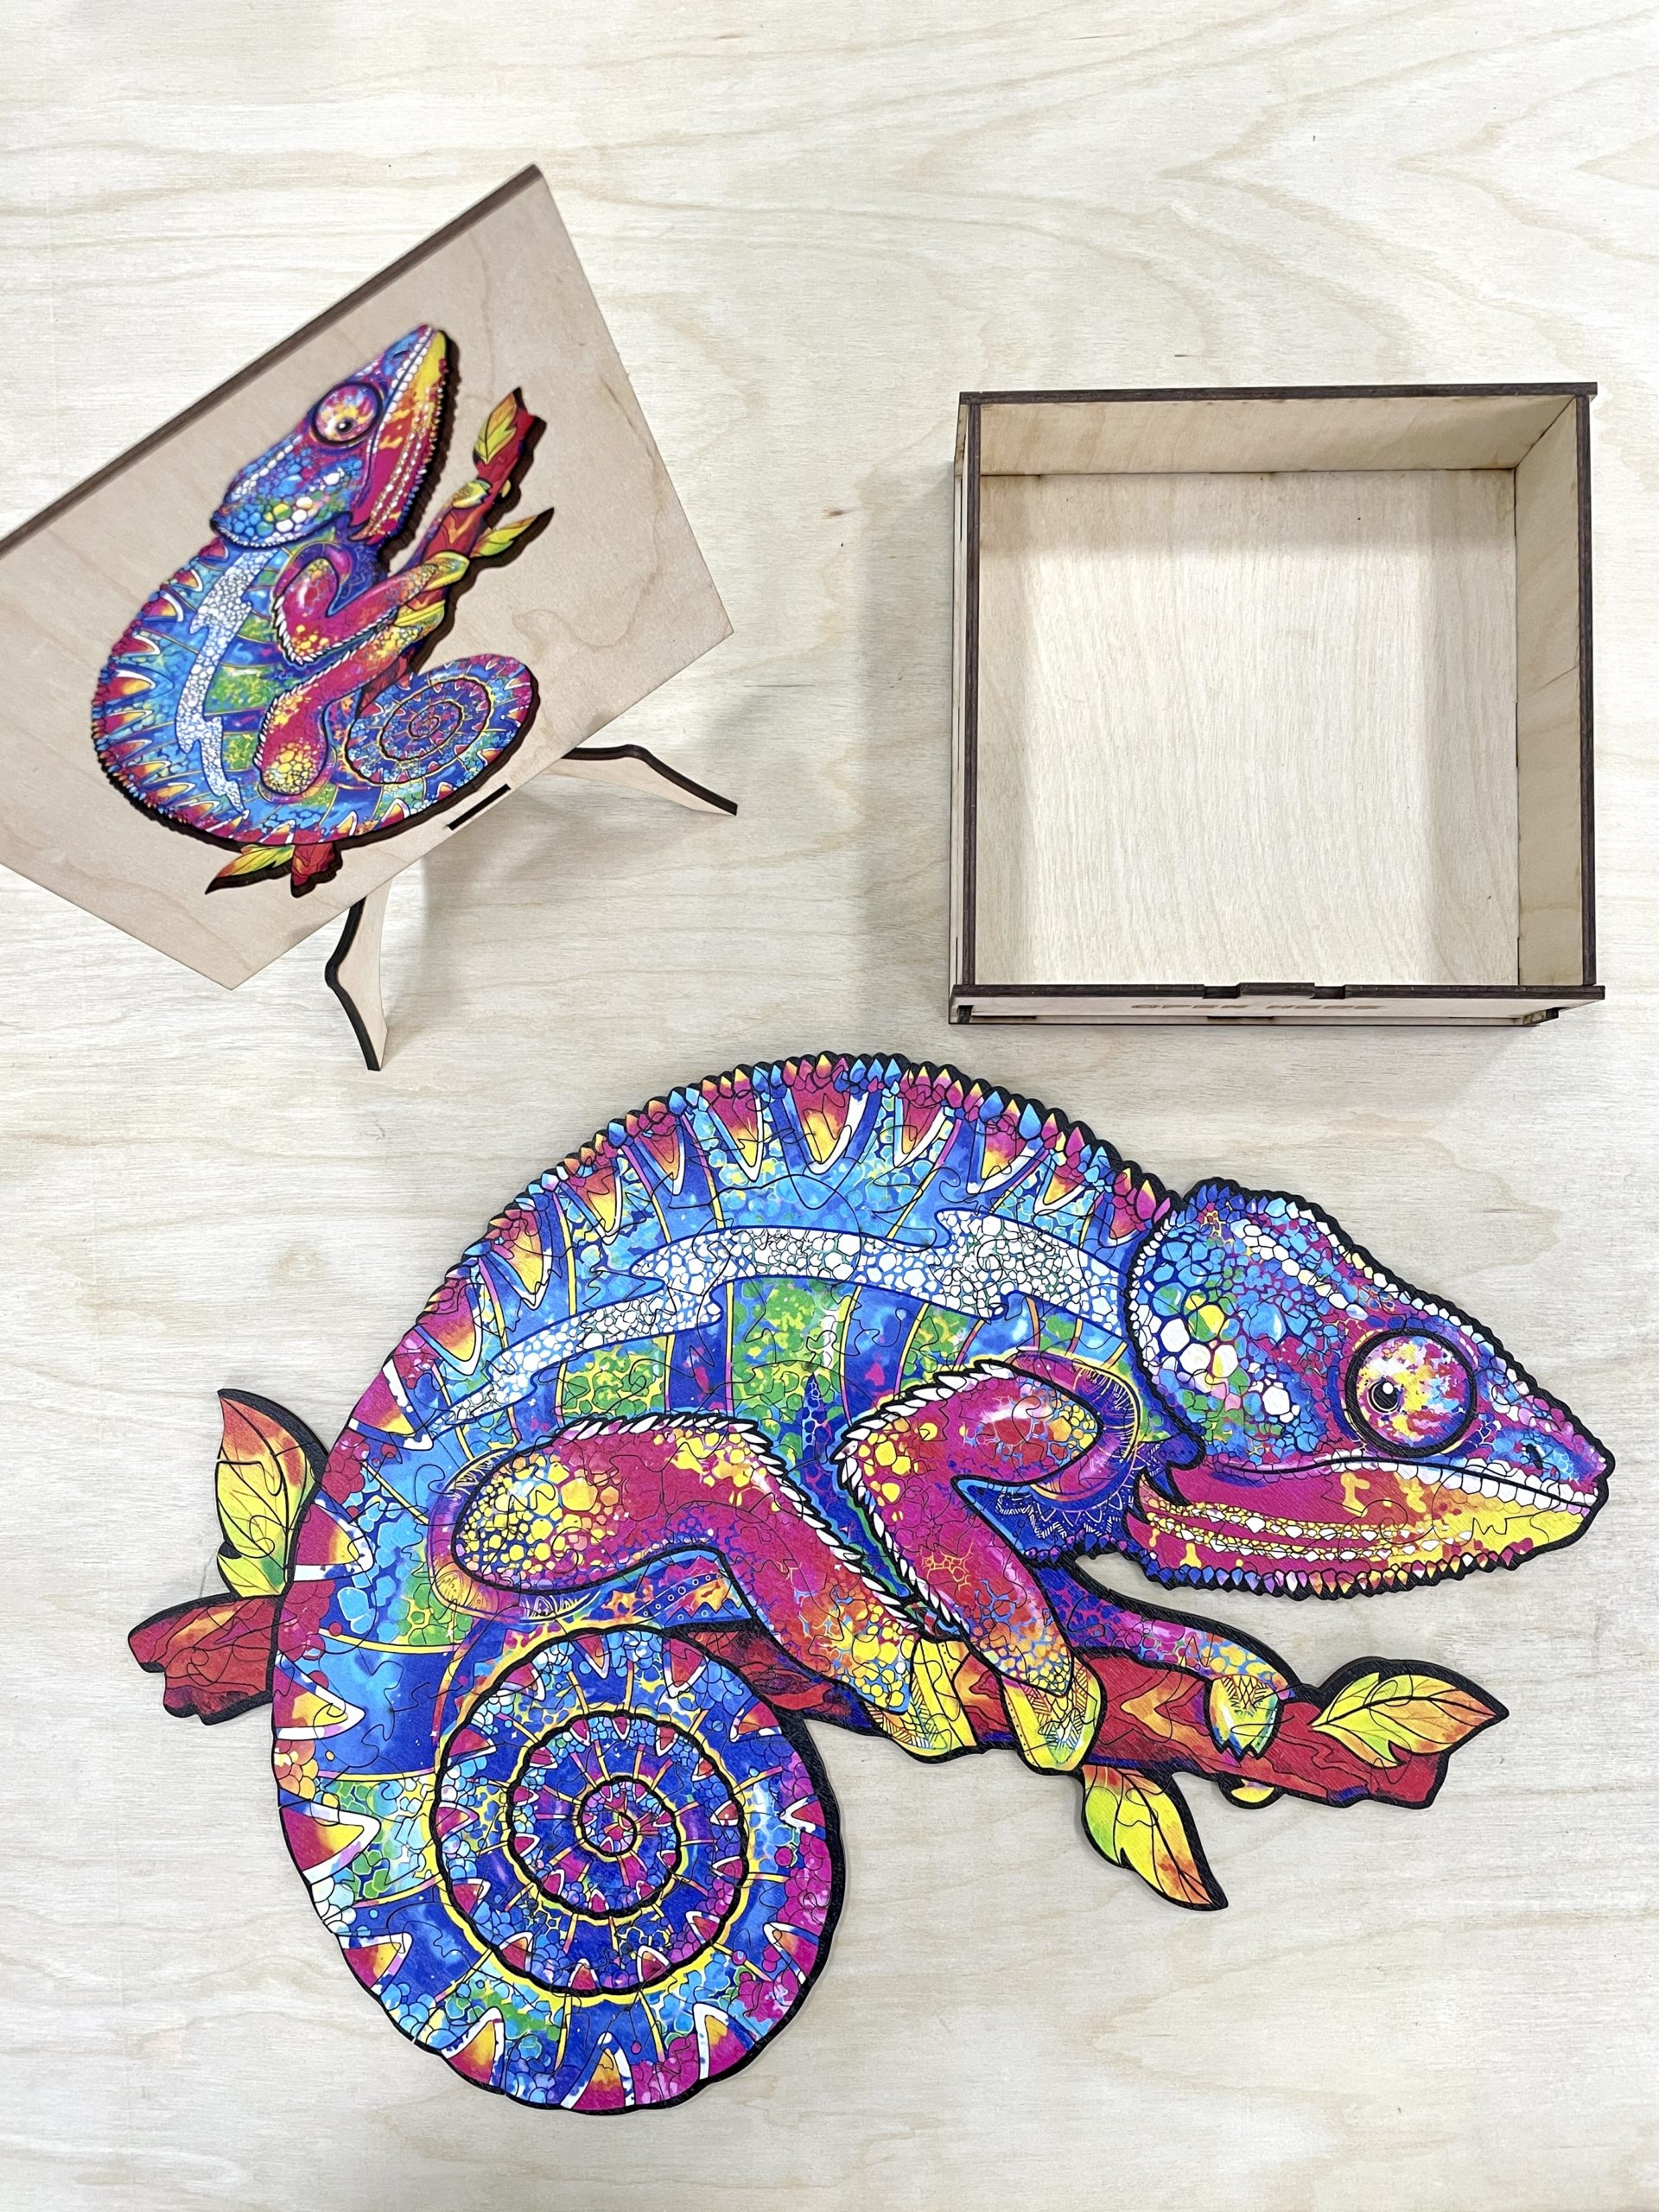 Iridescent Chameleon Freestyle wooden Puzzle